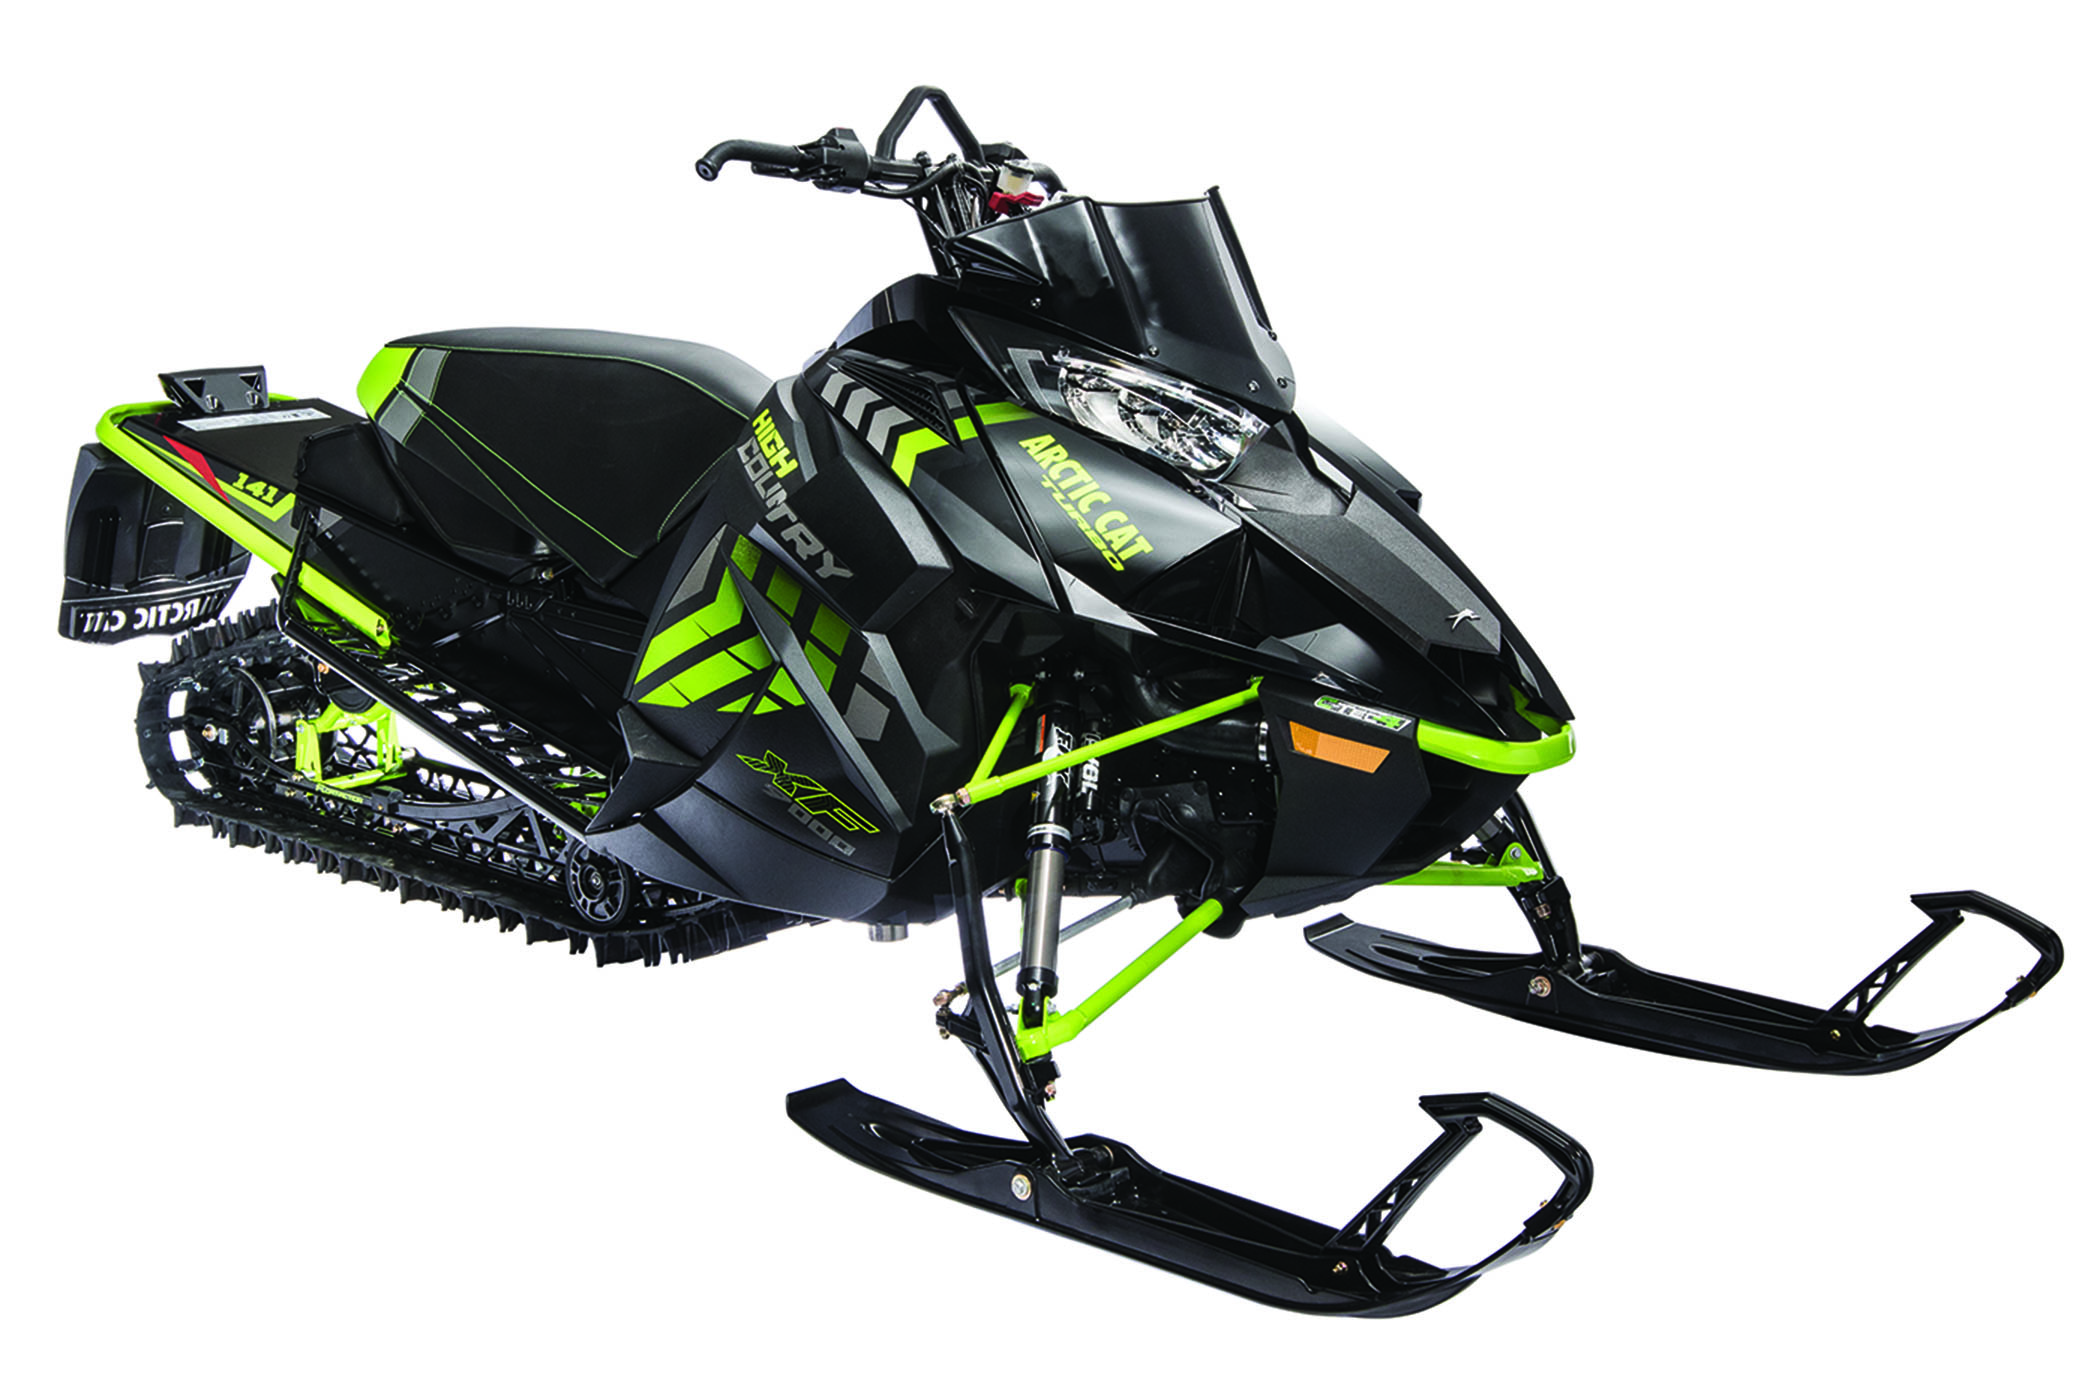 Arctic Cat issues snowmobile recall | Powersports Business